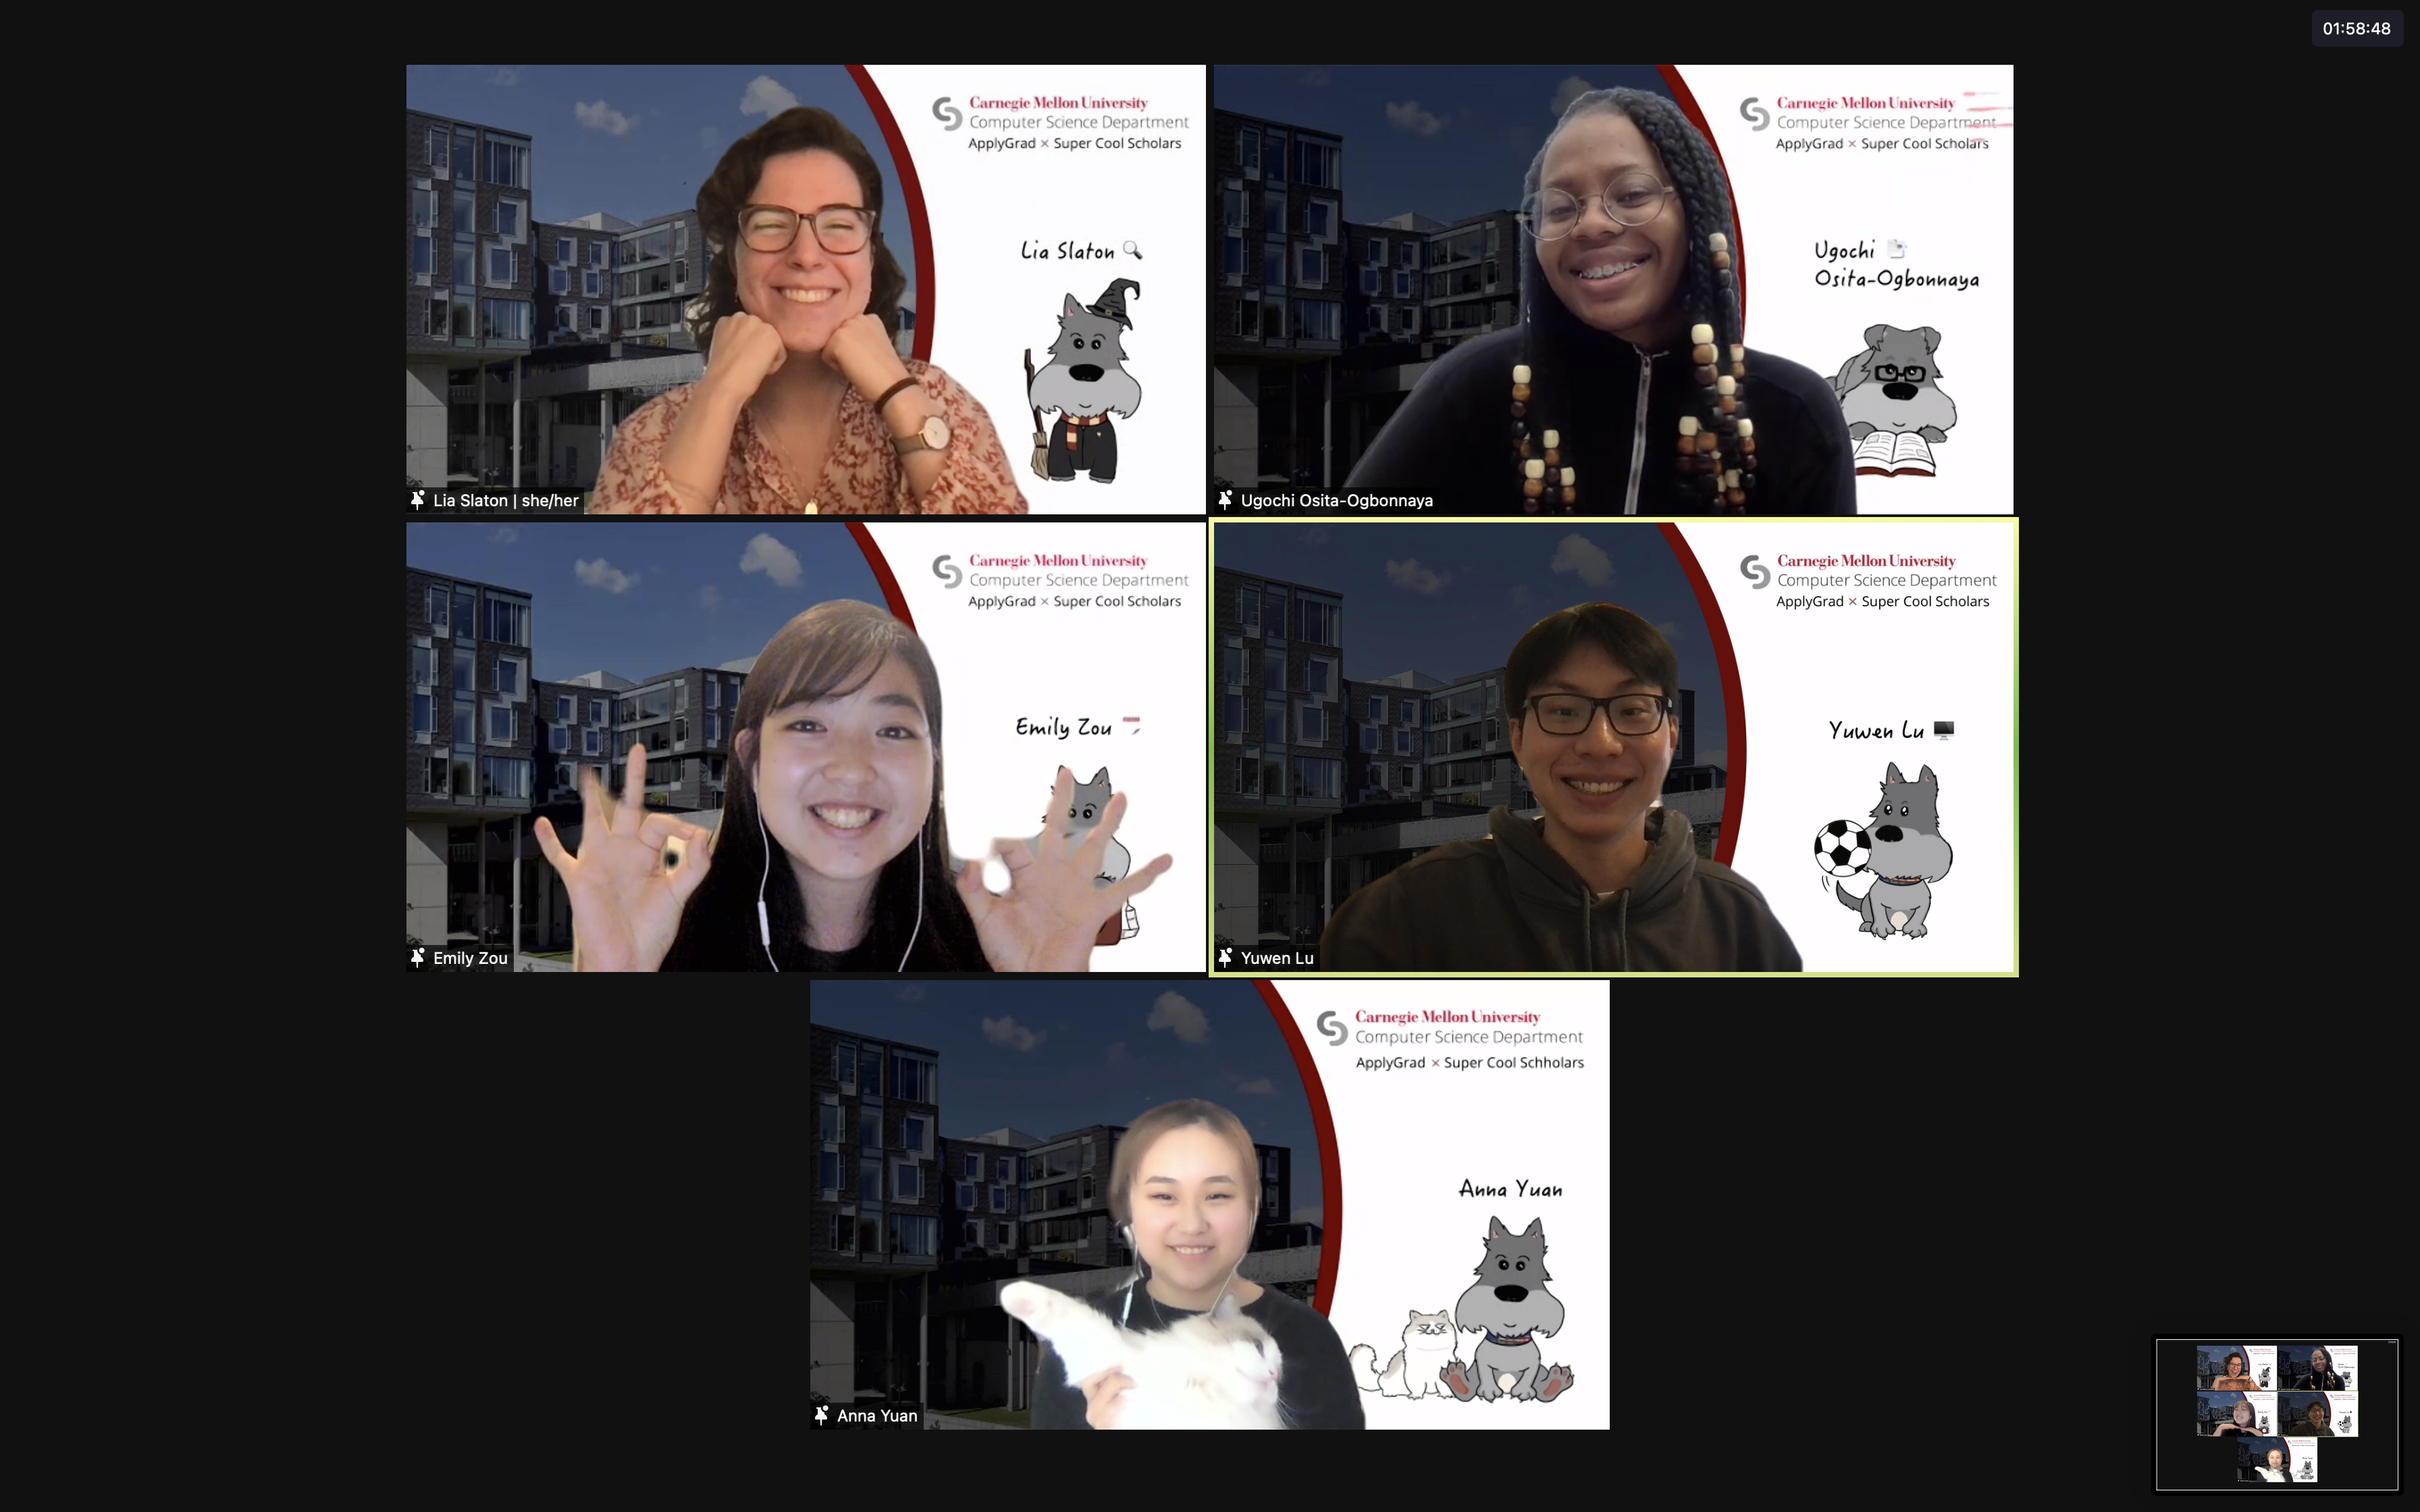 virtual group photo of the 5 students on Team ApplyGrad; each student in their Zoom window